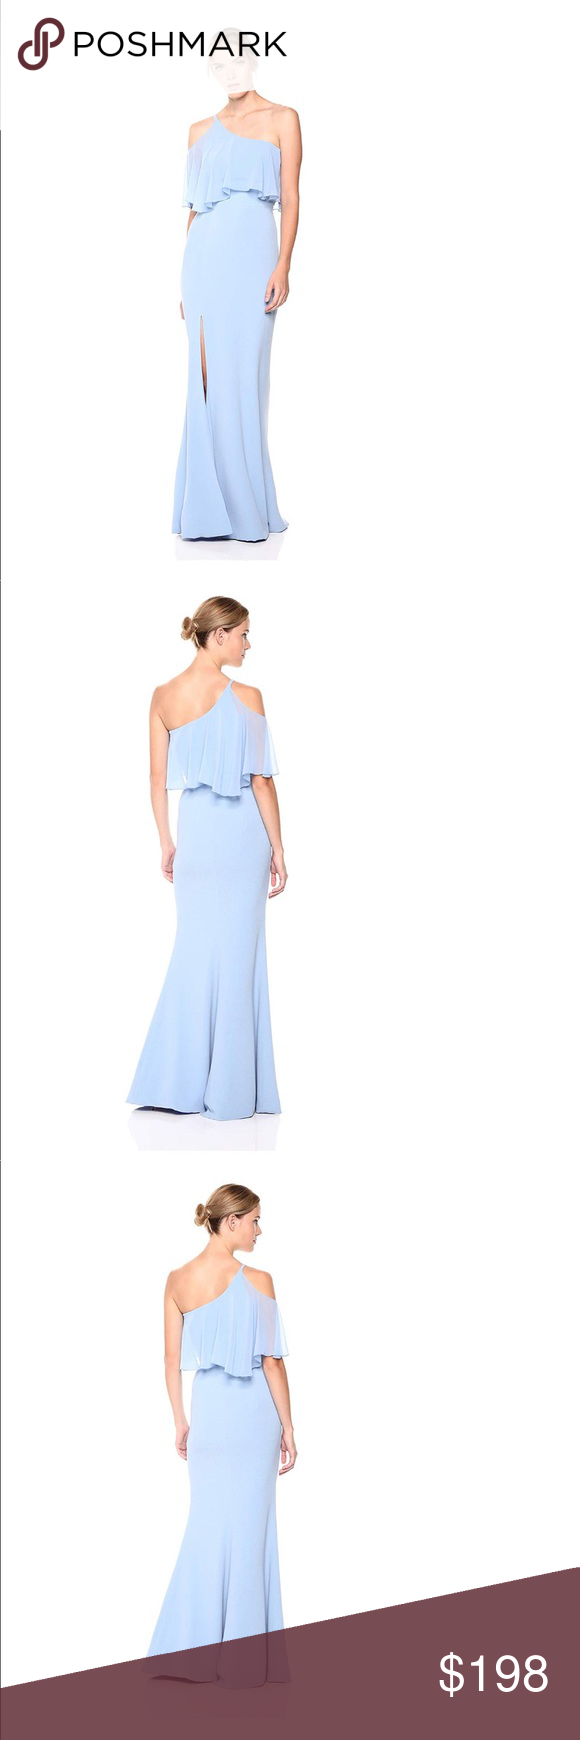 Dress The Population Ice Blue Gown Dress Blue Gown Dress Dress The Population Gowns Dresses [ 1740 x 580 Pixel ]